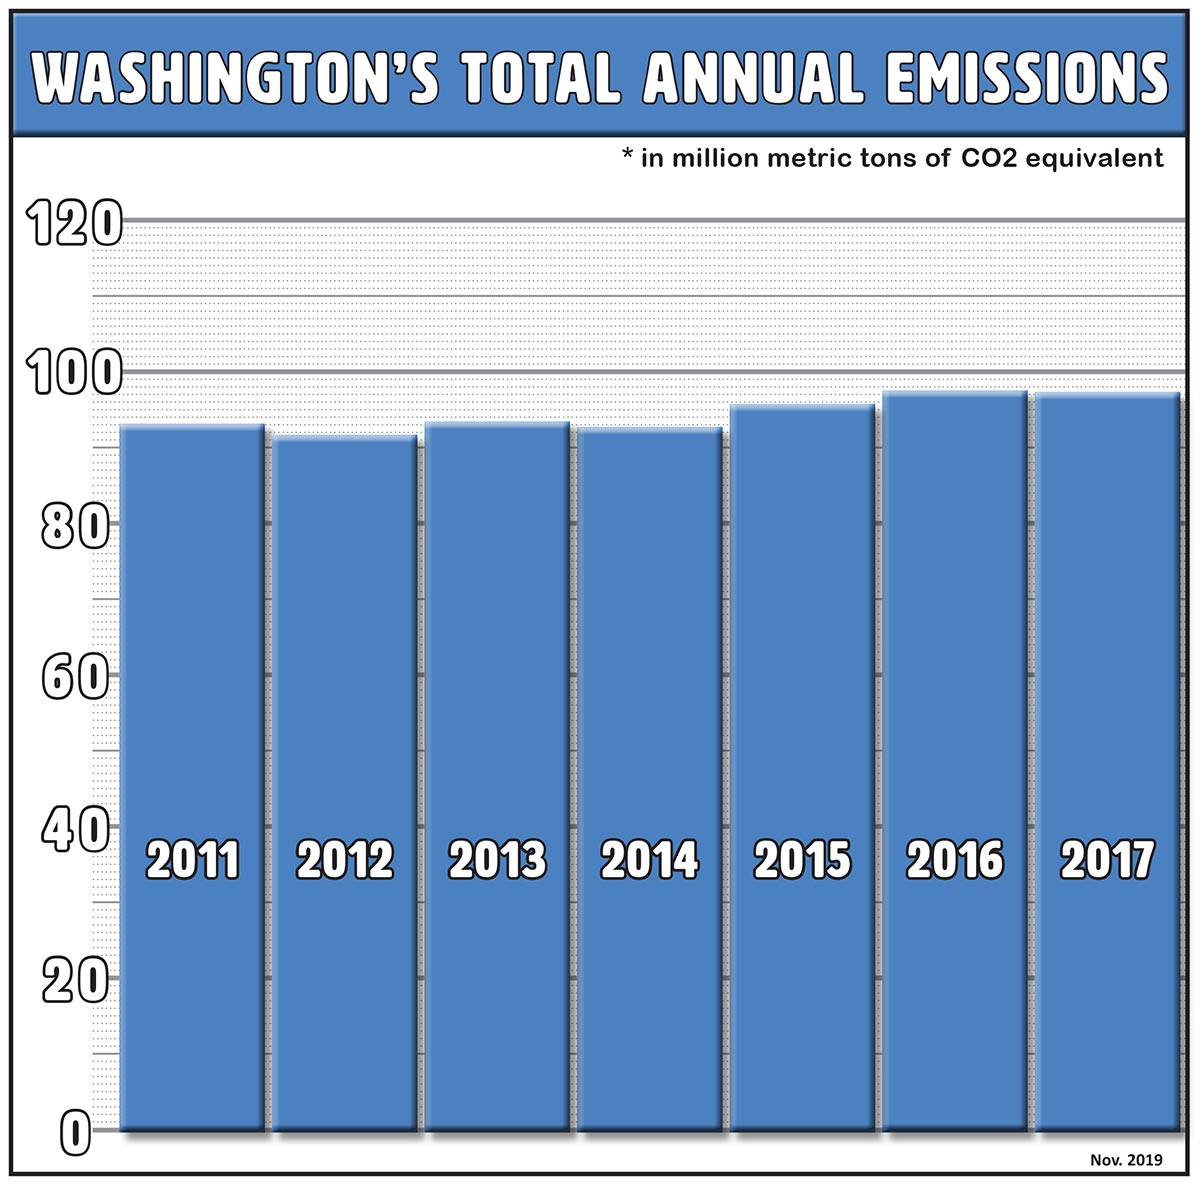 A bar chart showing greenhouse gas emissions in Washington between 2011 and 2017. Emissions have generally been growing slowly, but declined slightly in 2017 to 97.5 million metric tons.